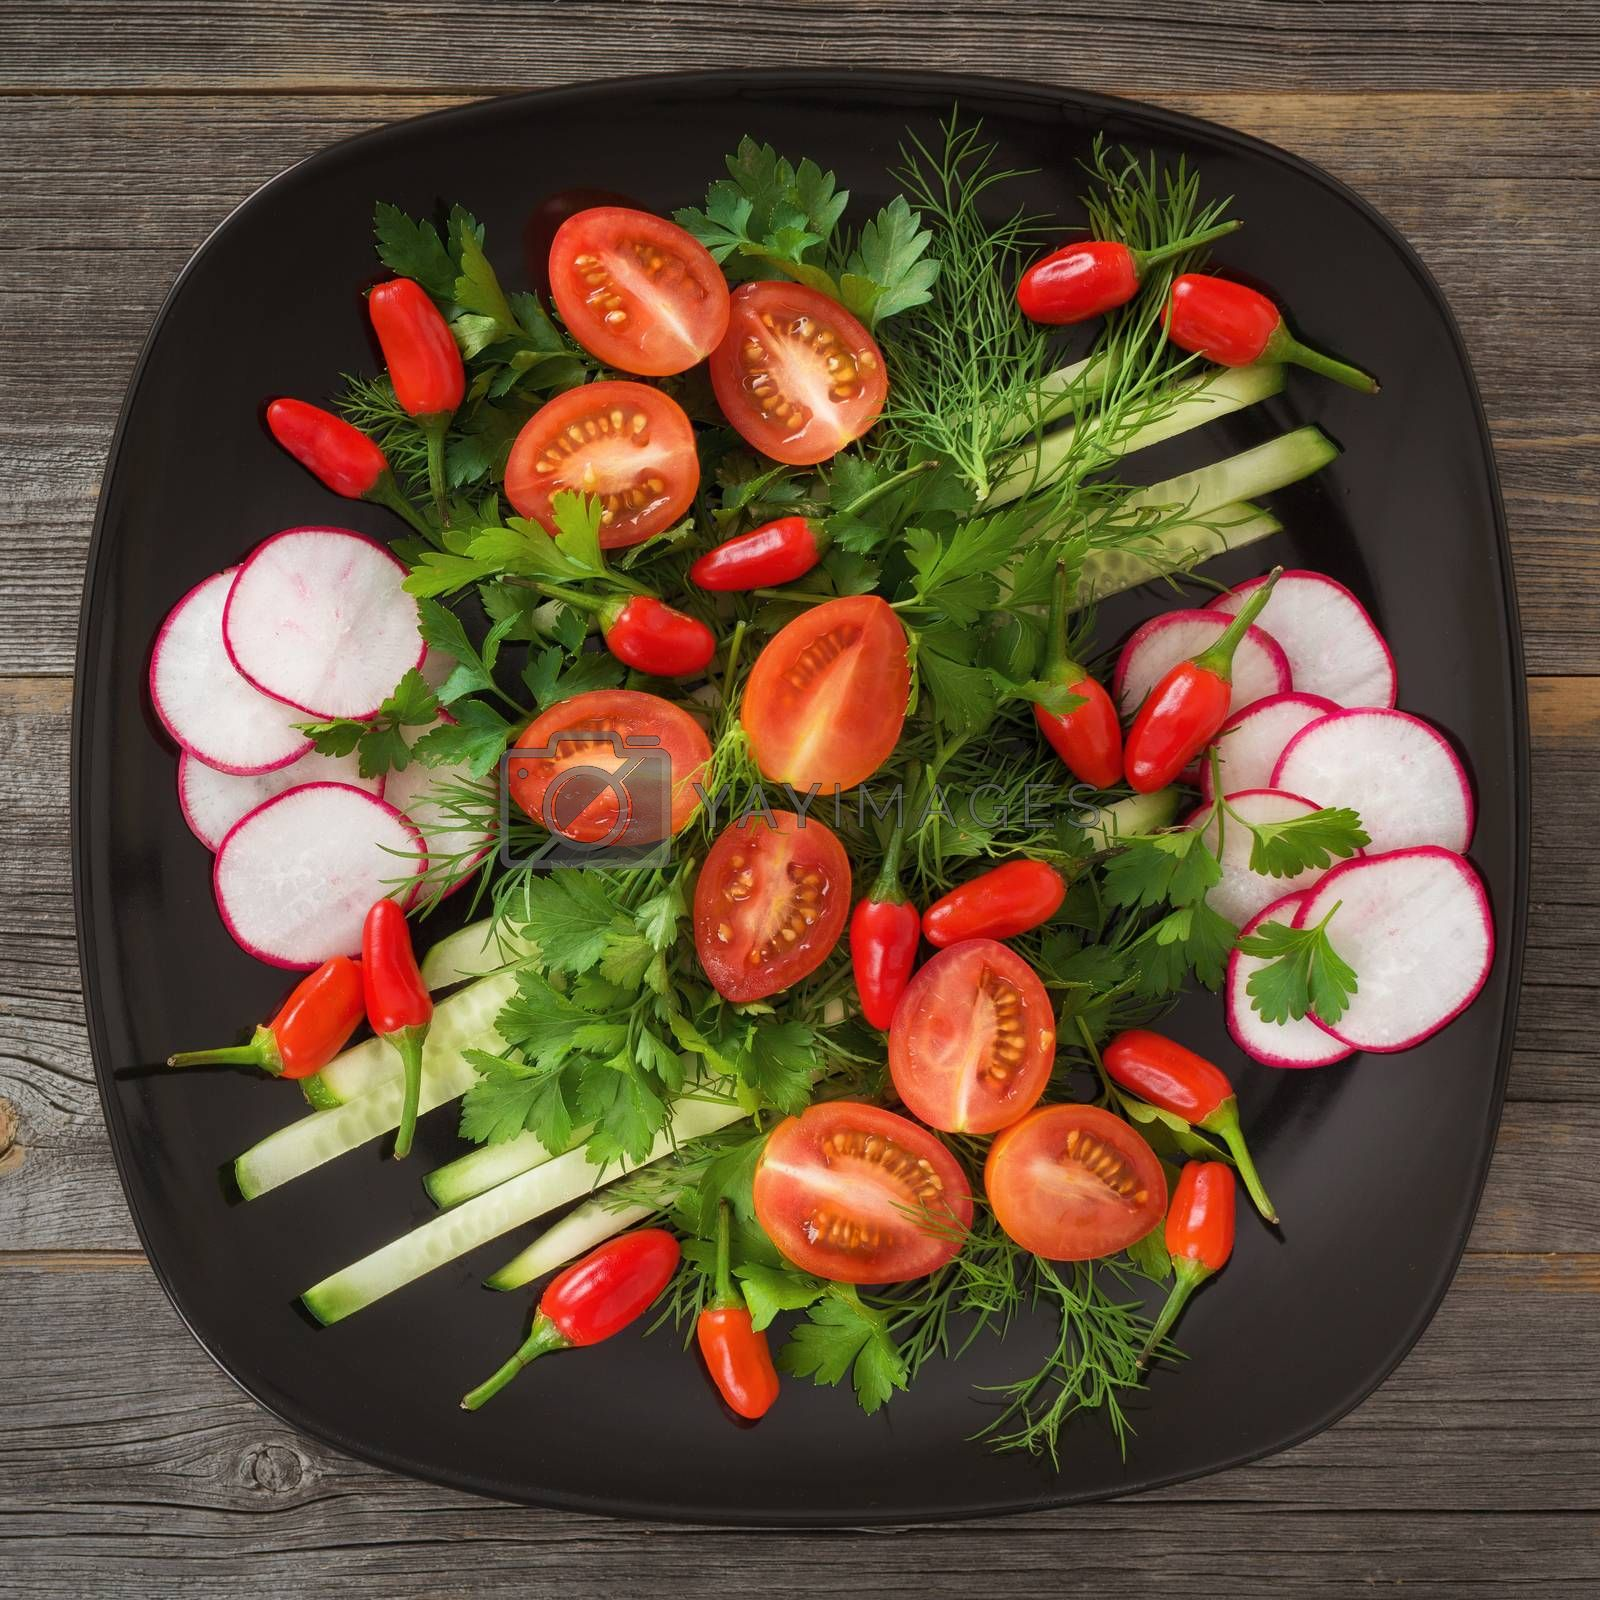 Greens and vegetable salad on a black ceramic plate in style a rustic